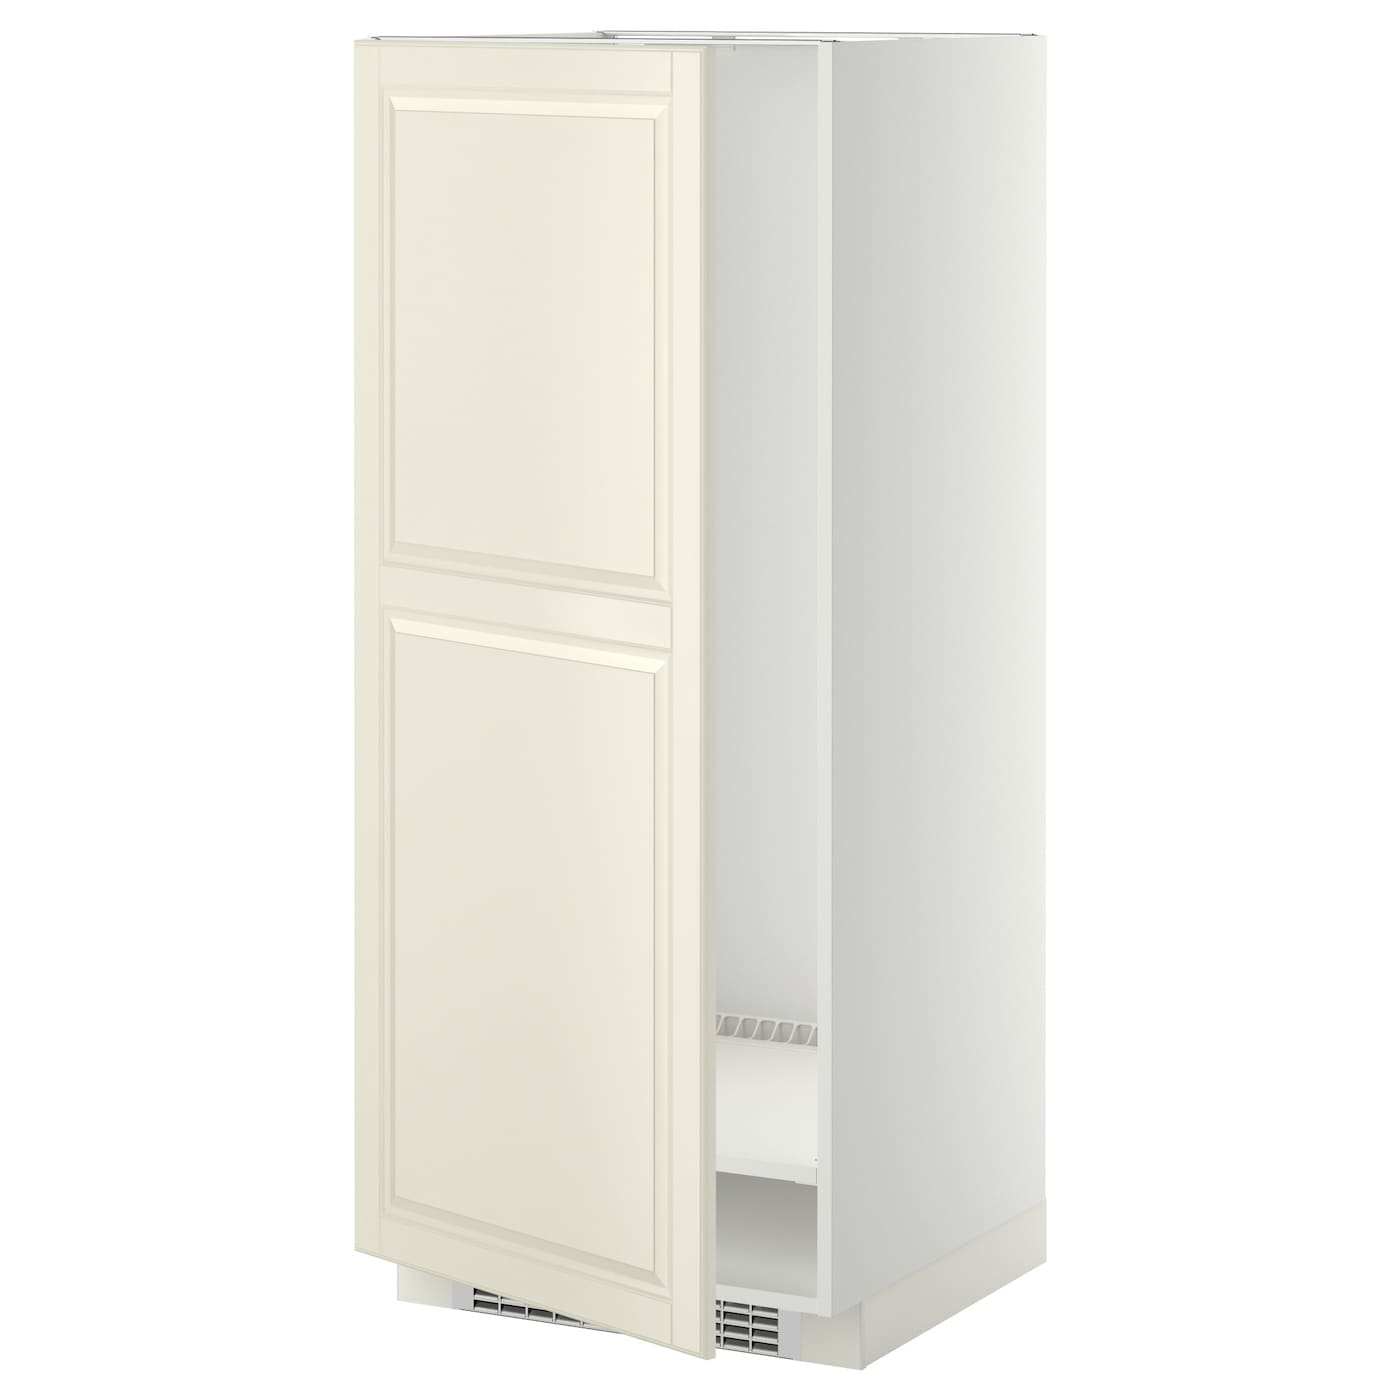 Metod high cabinet for fridge freezer white bodbyn off for Ikea fridge cabinet